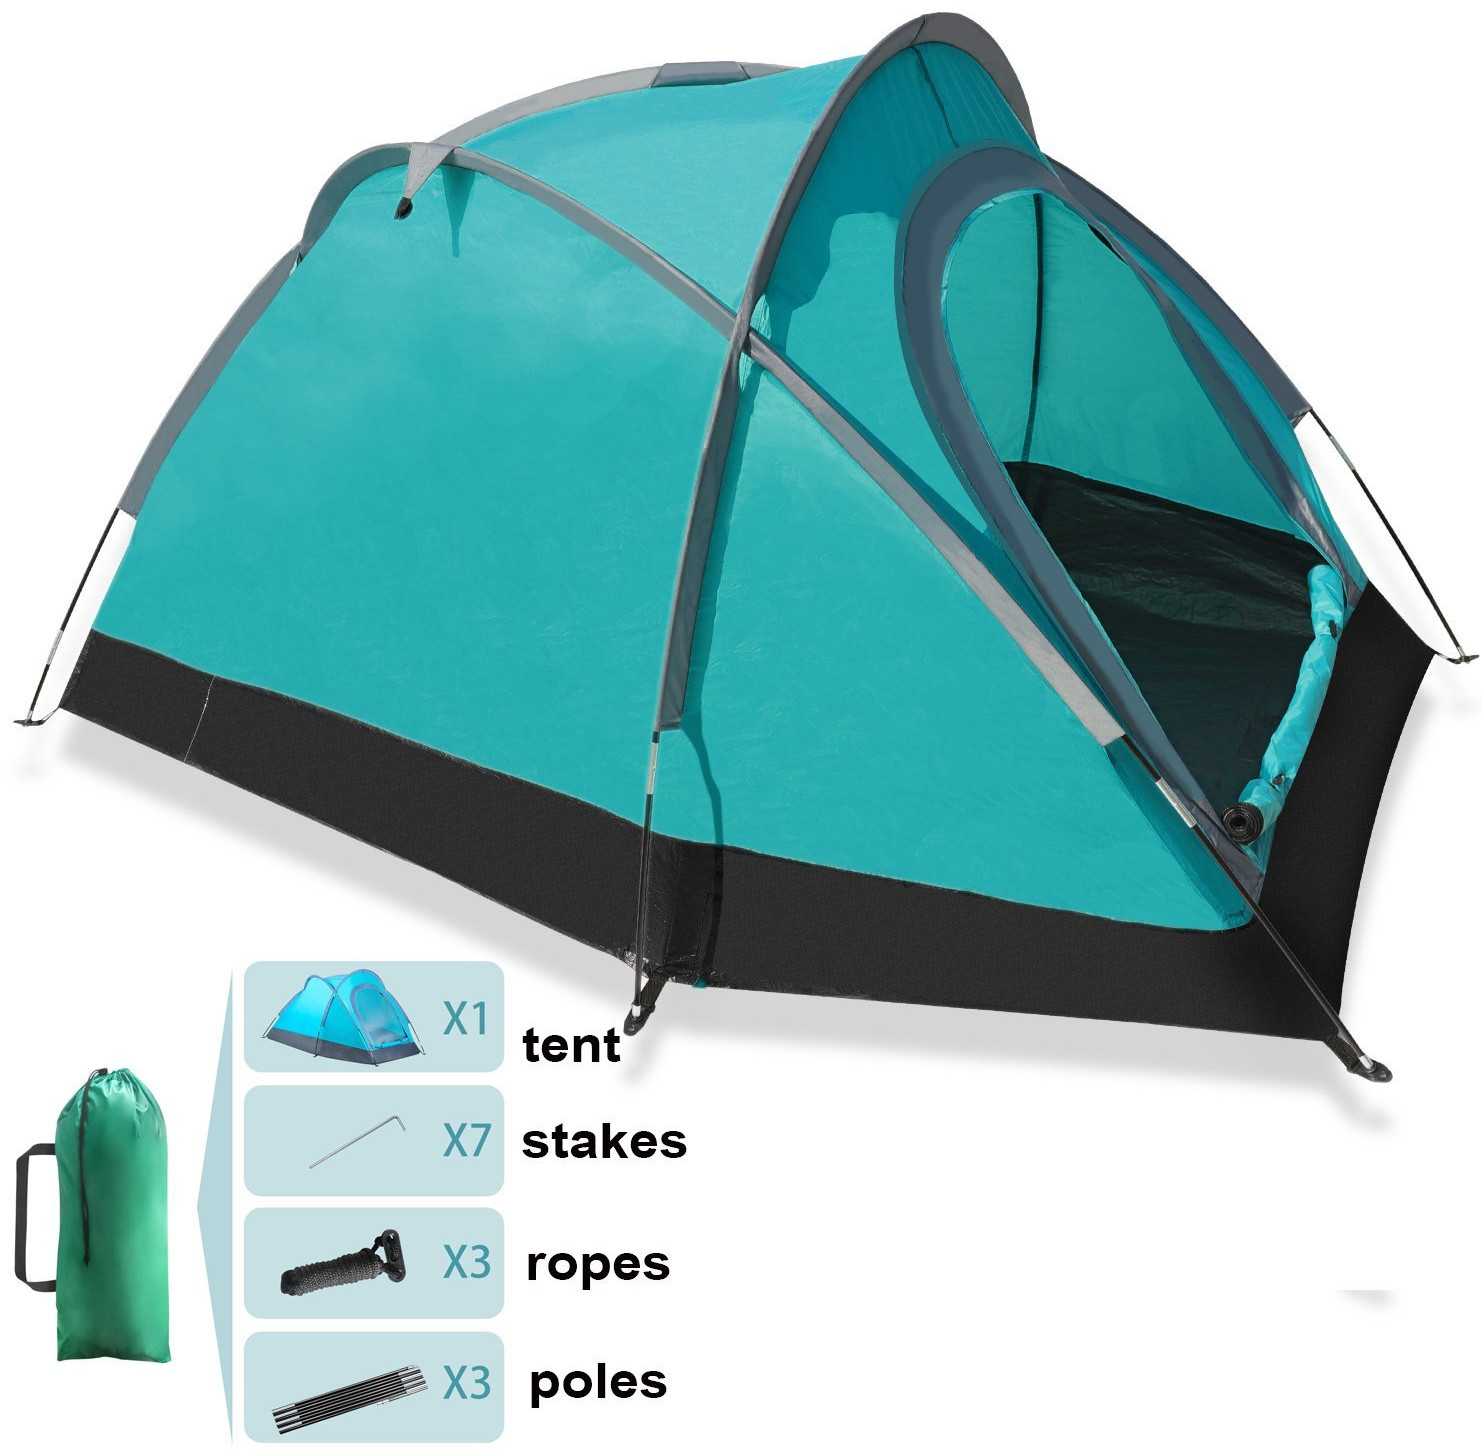 Lightweight Backpacking Tents 2 Person for Hiking C&ing Fishing Waterproof for 3 Seasons  sc 1 st  Geek Travellers & 10 Best travel backpacking tents under 50 dollar